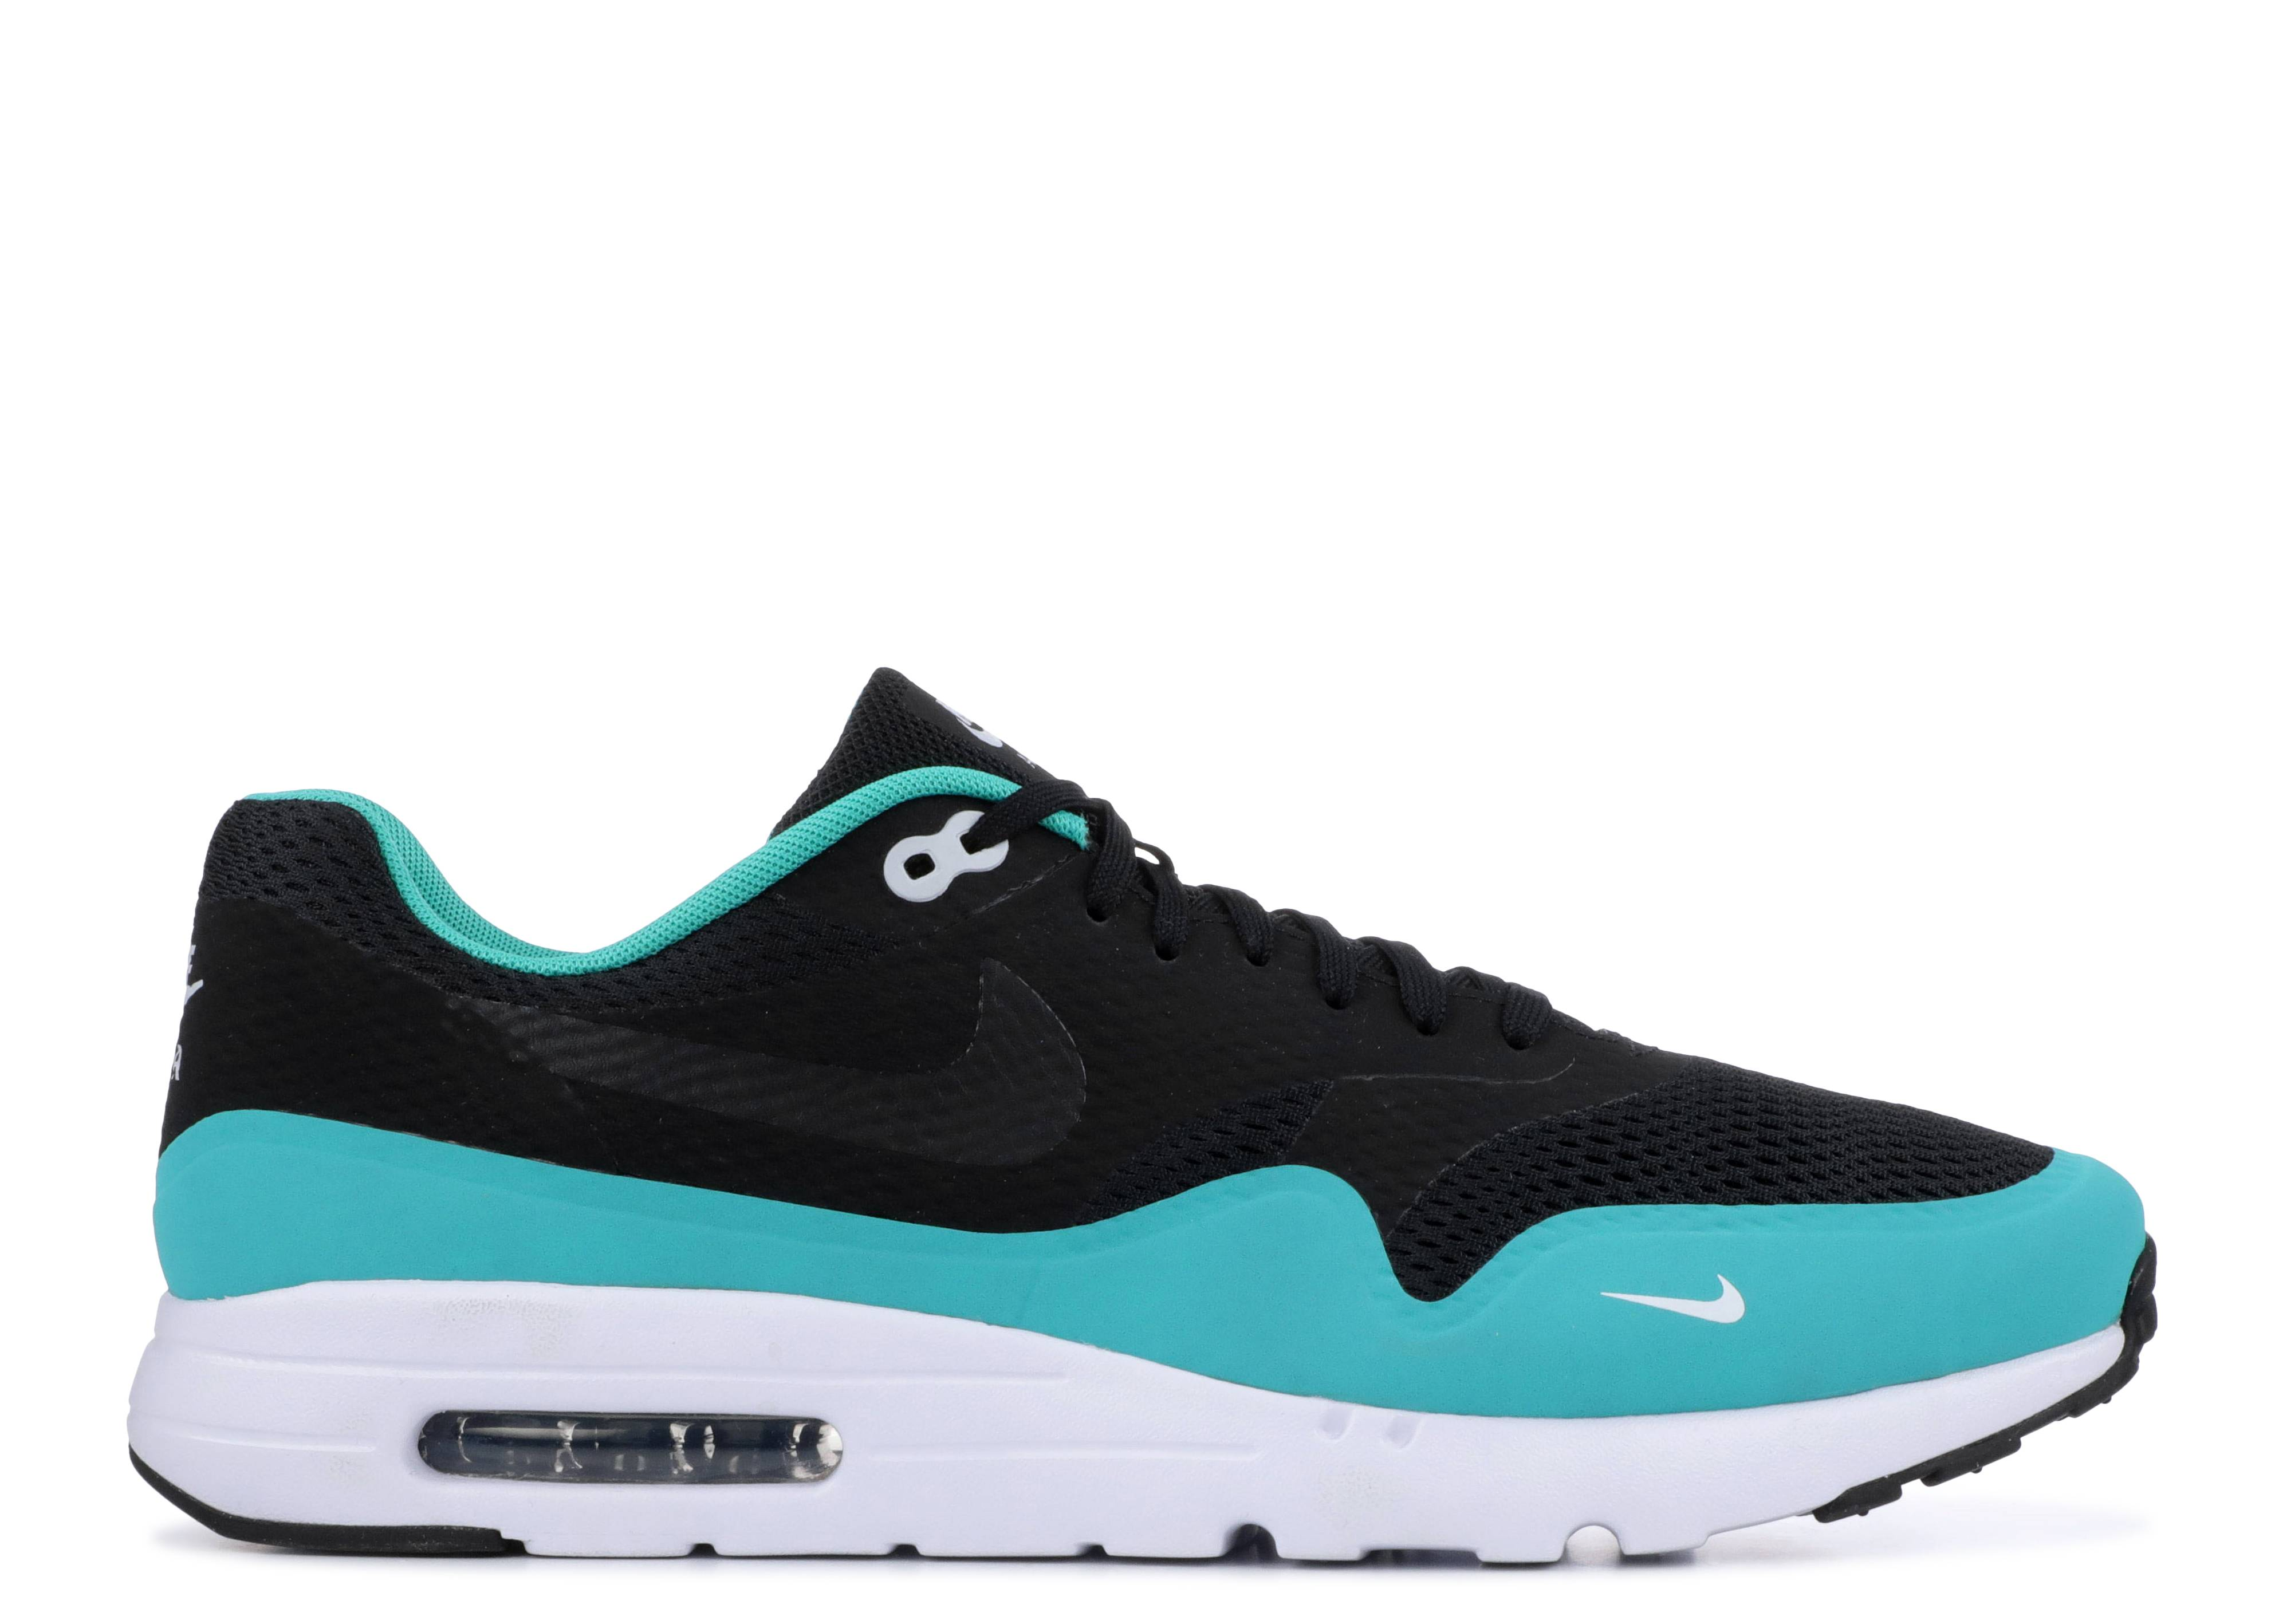 outlet store 9c99c 6a737 Nike Air Max 1 Ultra Essential - Nike - 819476 003 - black/clear ...